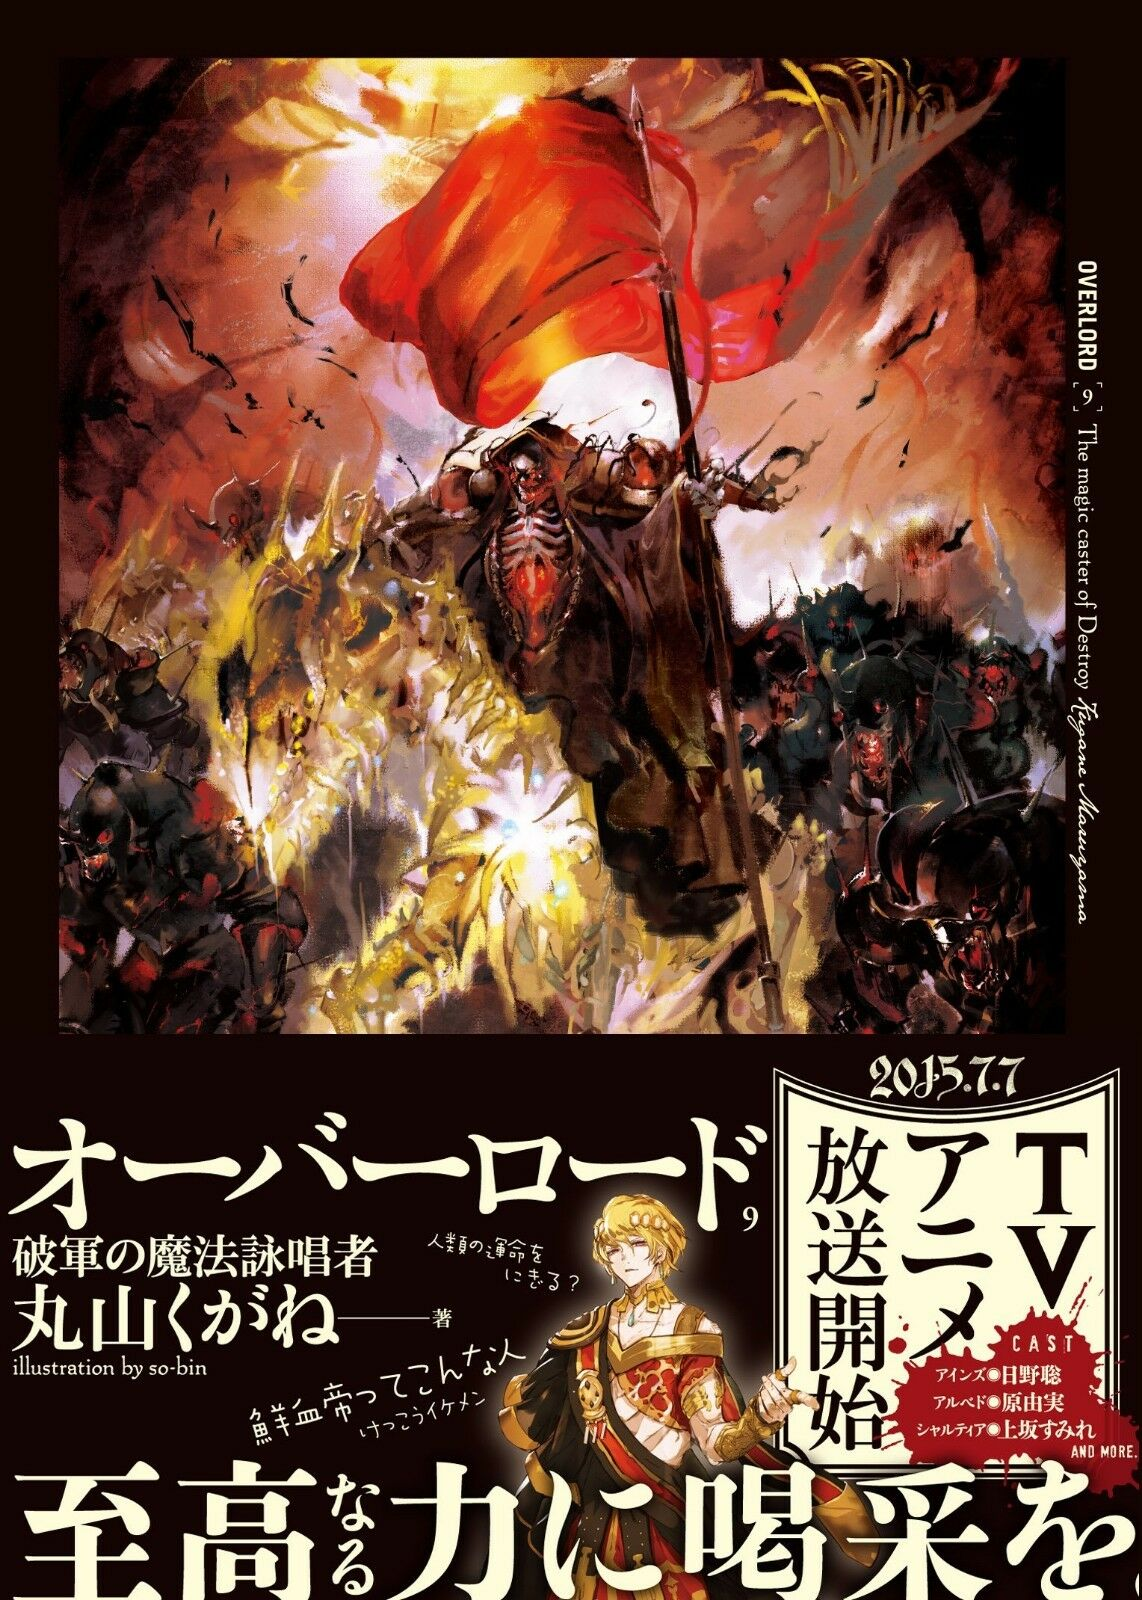 Overlord Vol 9 Kugane Maruyama So-bin Light Novel Japanese Book